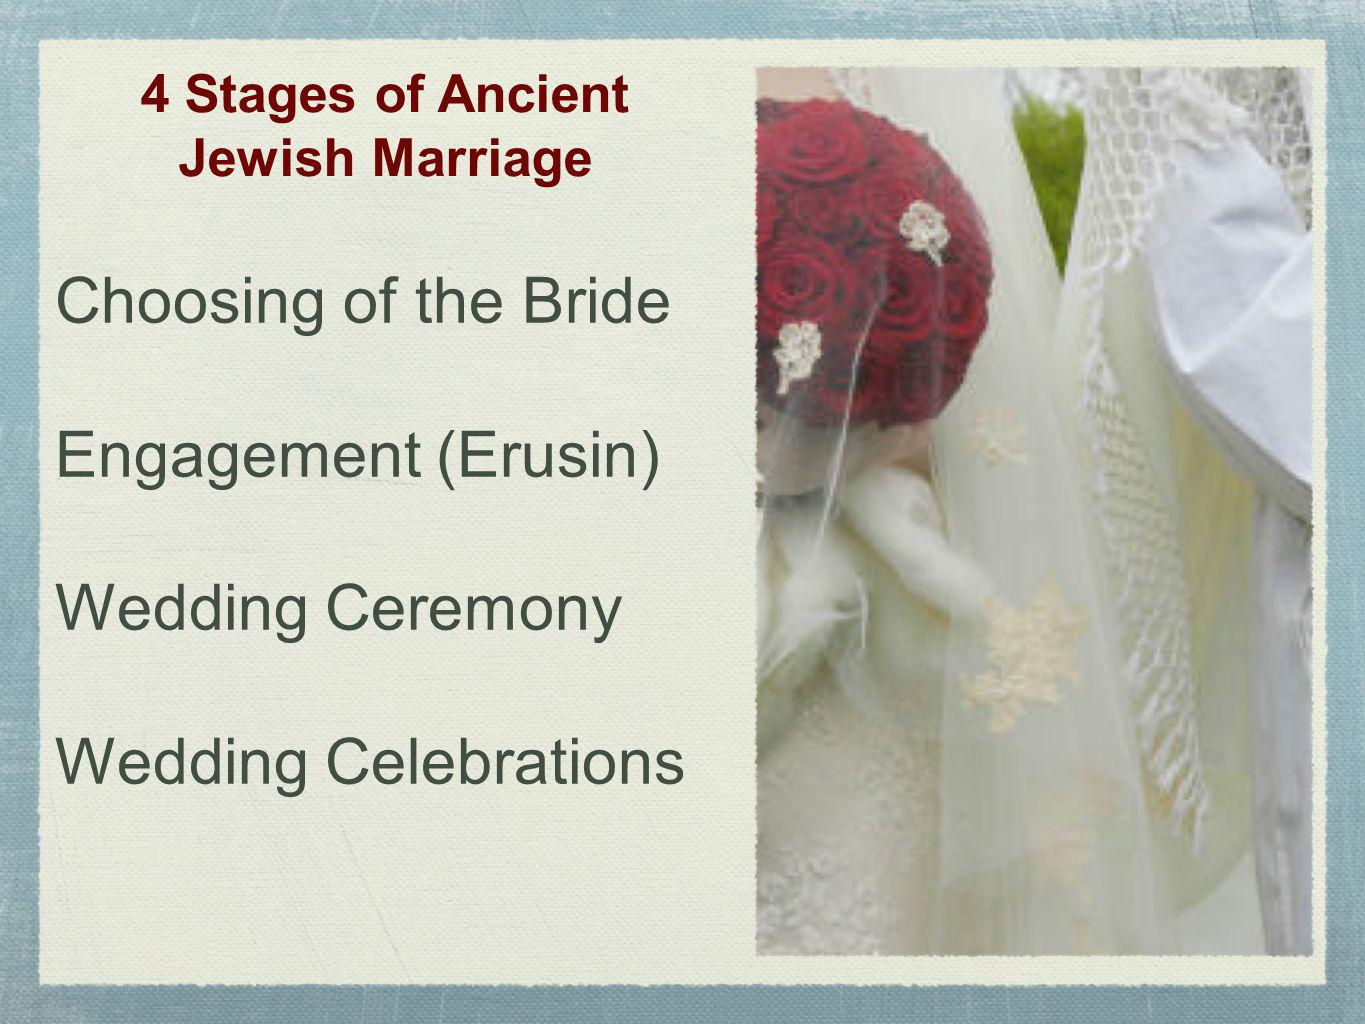 4 Stages of Ancient Jewish Marriage